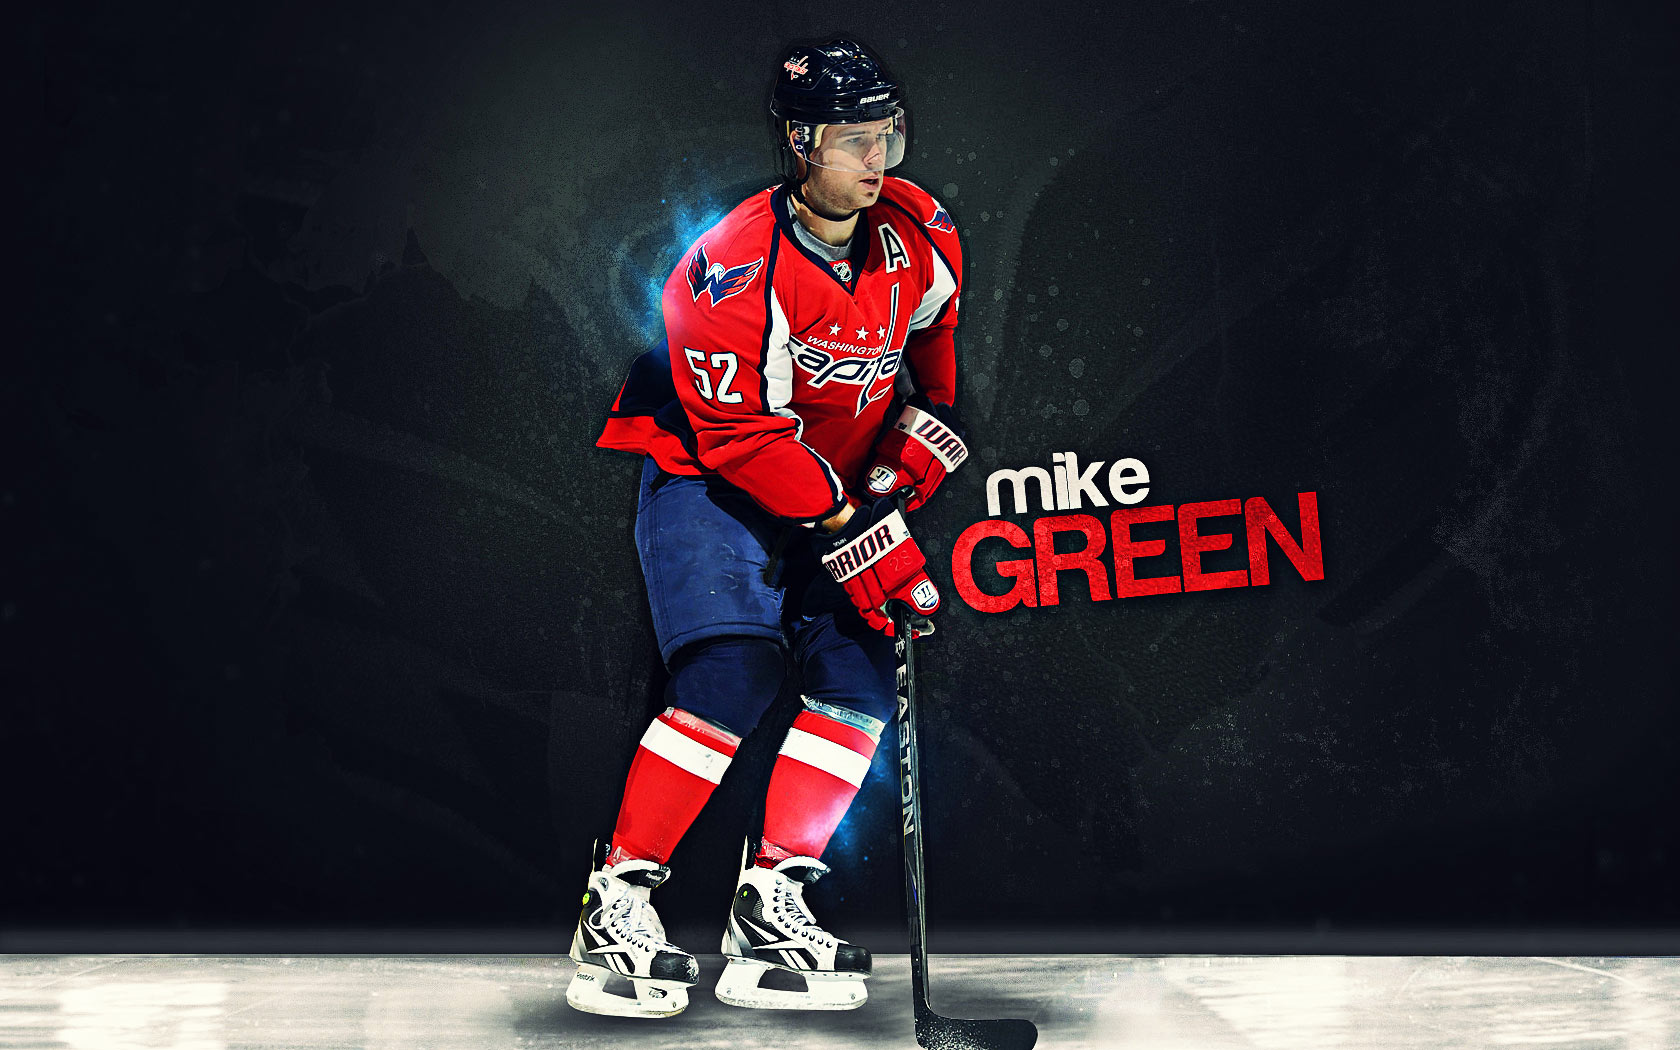 NHL Wallpapers   Mike Green Washington Capitals 1680x1050 wallpaper 1680x1050